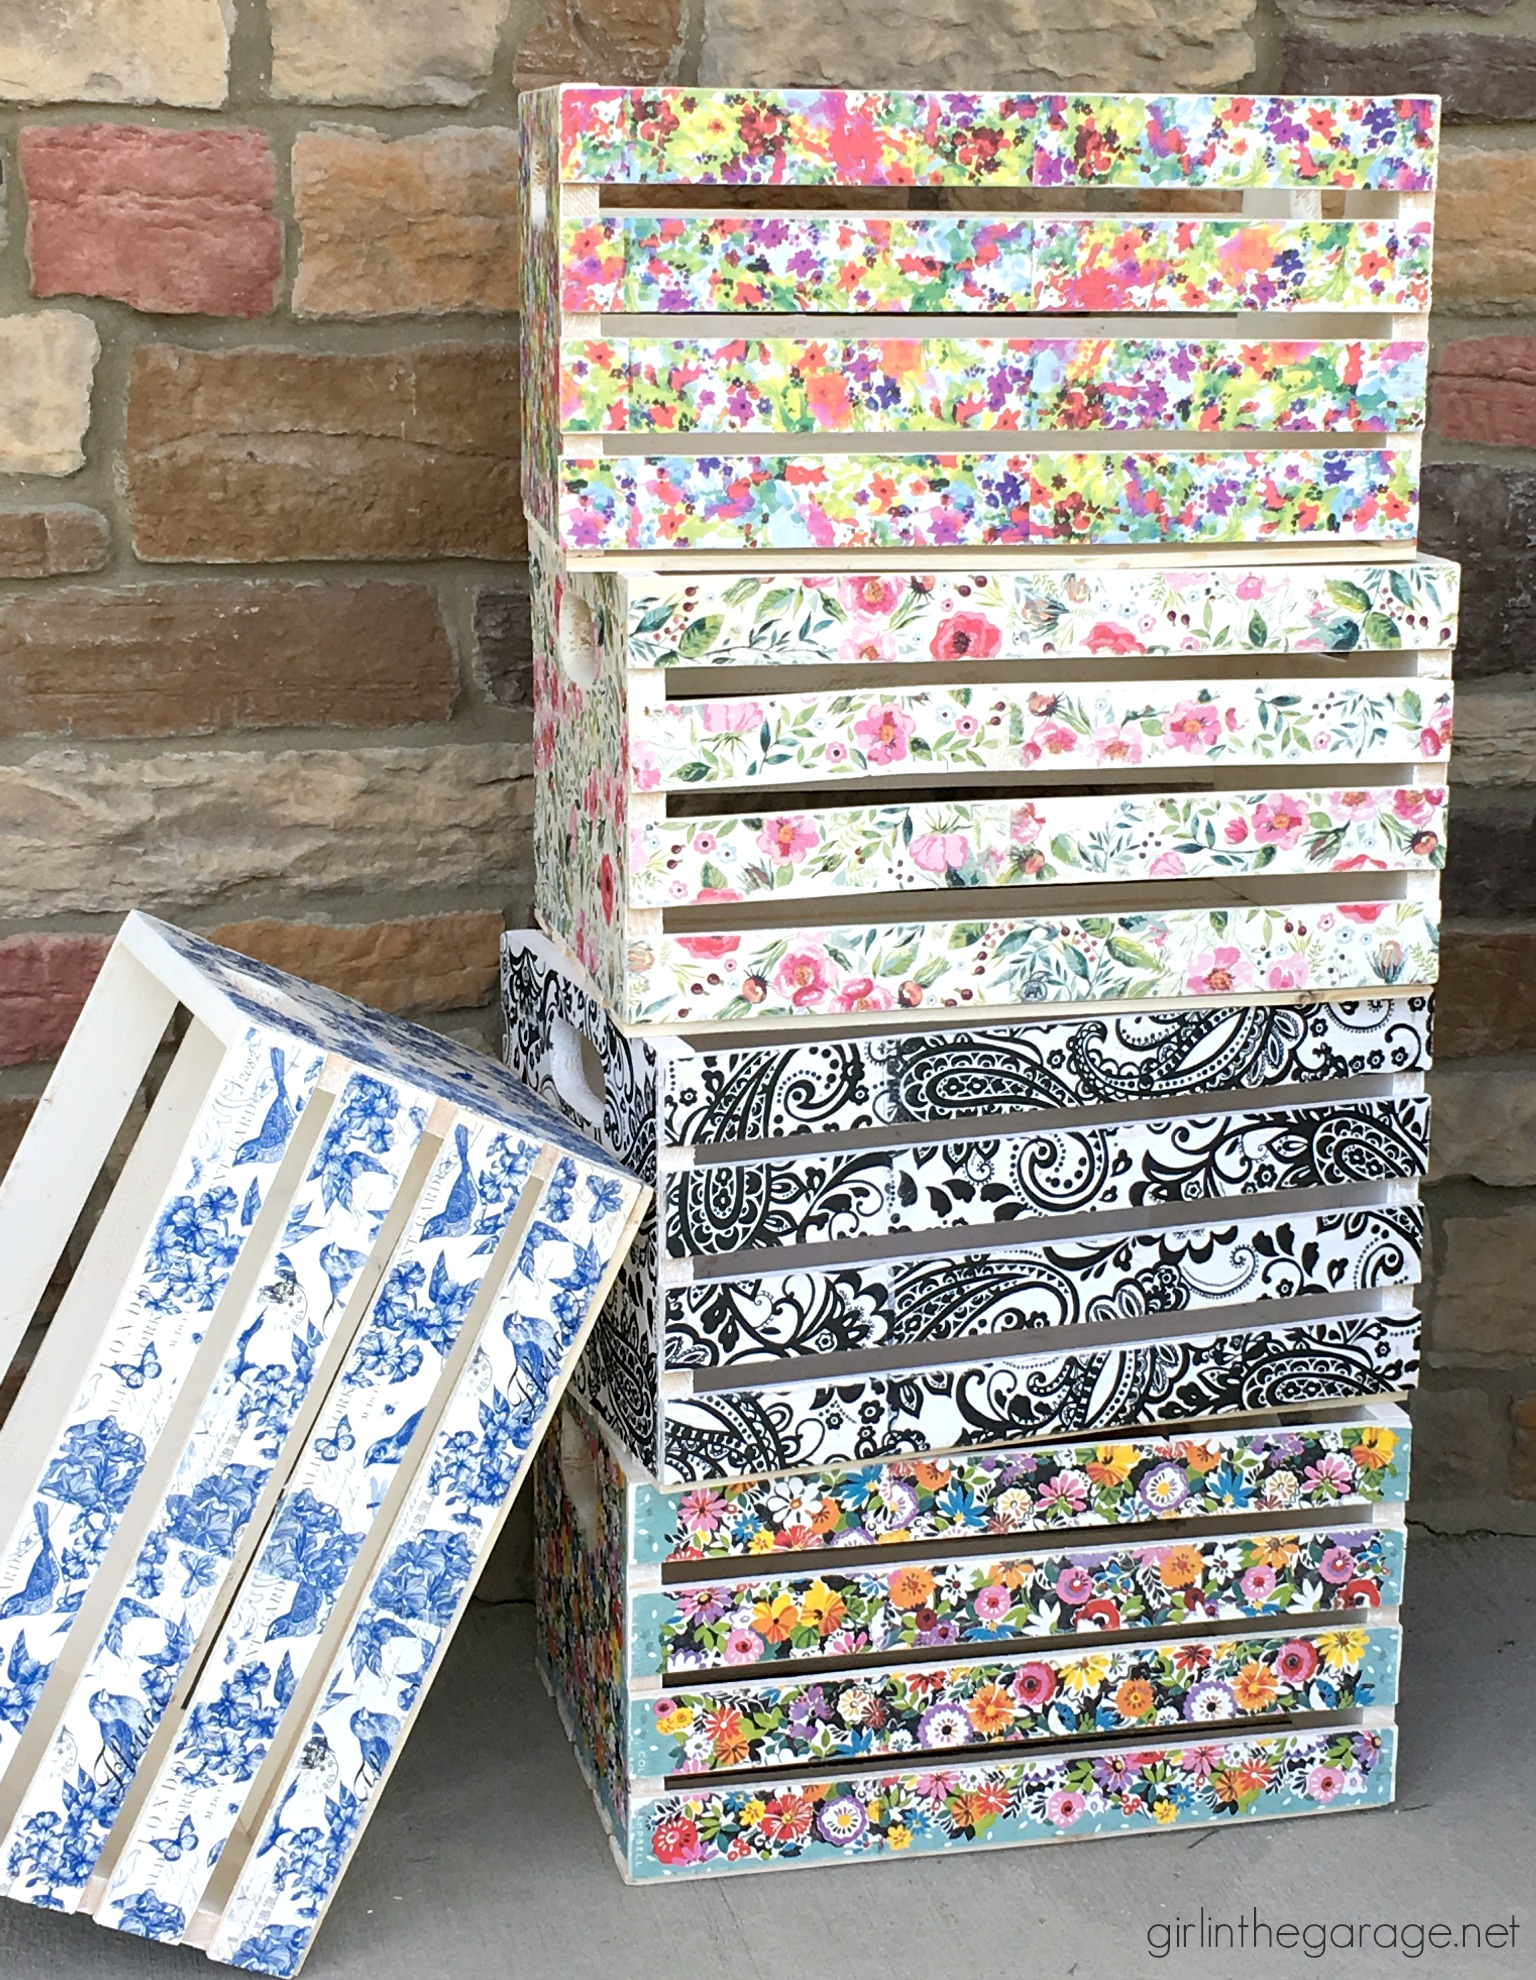 Decoupage wood crates with napkins - Girl in the Garage